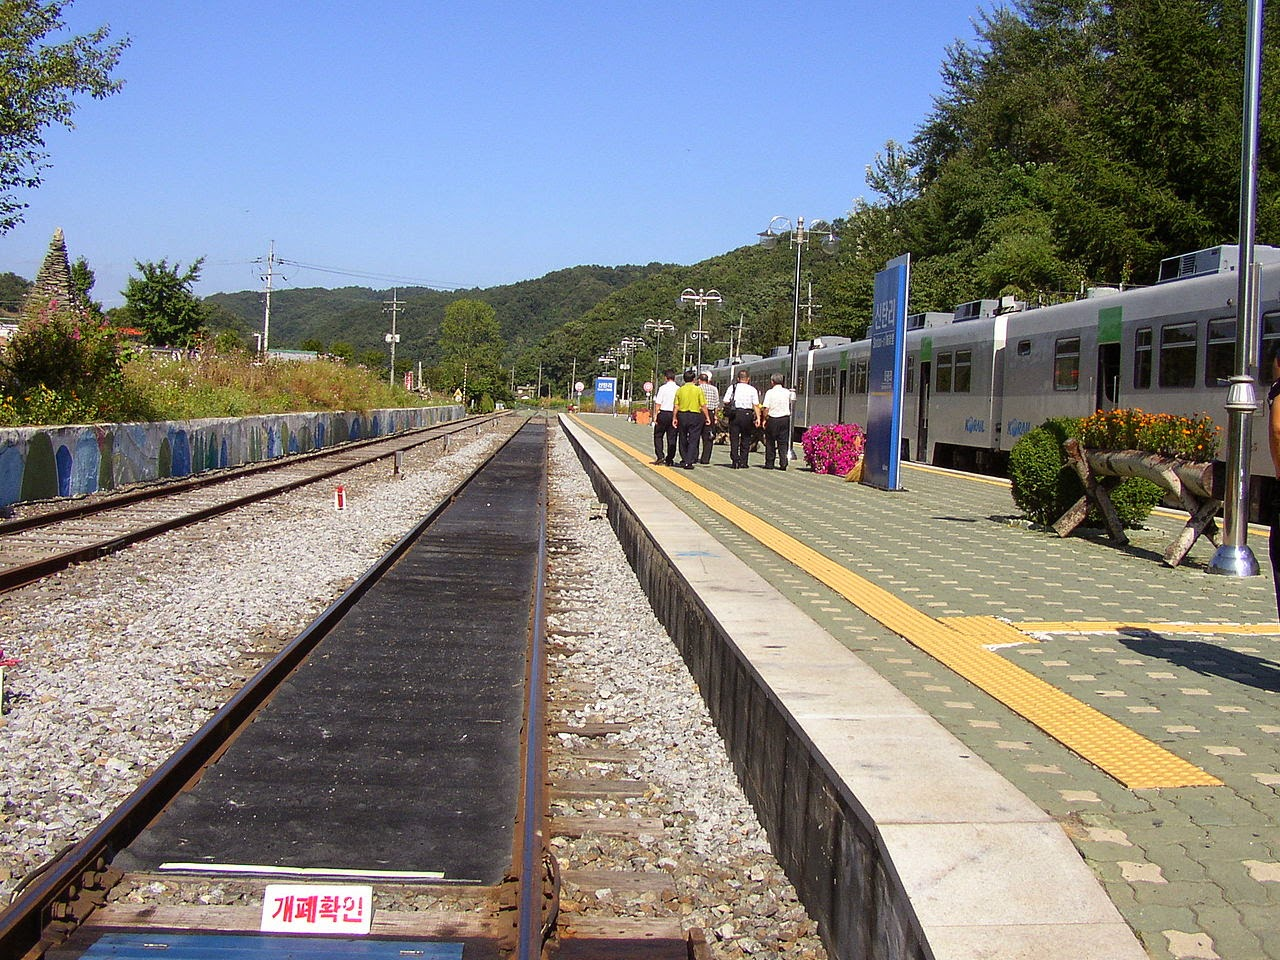 Photo: Sintan-ri Station (Gyeongwon Line, The Northernmost Station in South Korea,  2008-09-12) By Seonjong Park via Wikimedia Commons (CC BY-SA 3.0) http://en.wikipedia.org/wiki/File:Korail_Gyeongwon_Line_Sintan-ri_Station5.JPG  ★画像使用記事 『グリーンフィッシュ』 http://inagara.octsky.net/green-fish